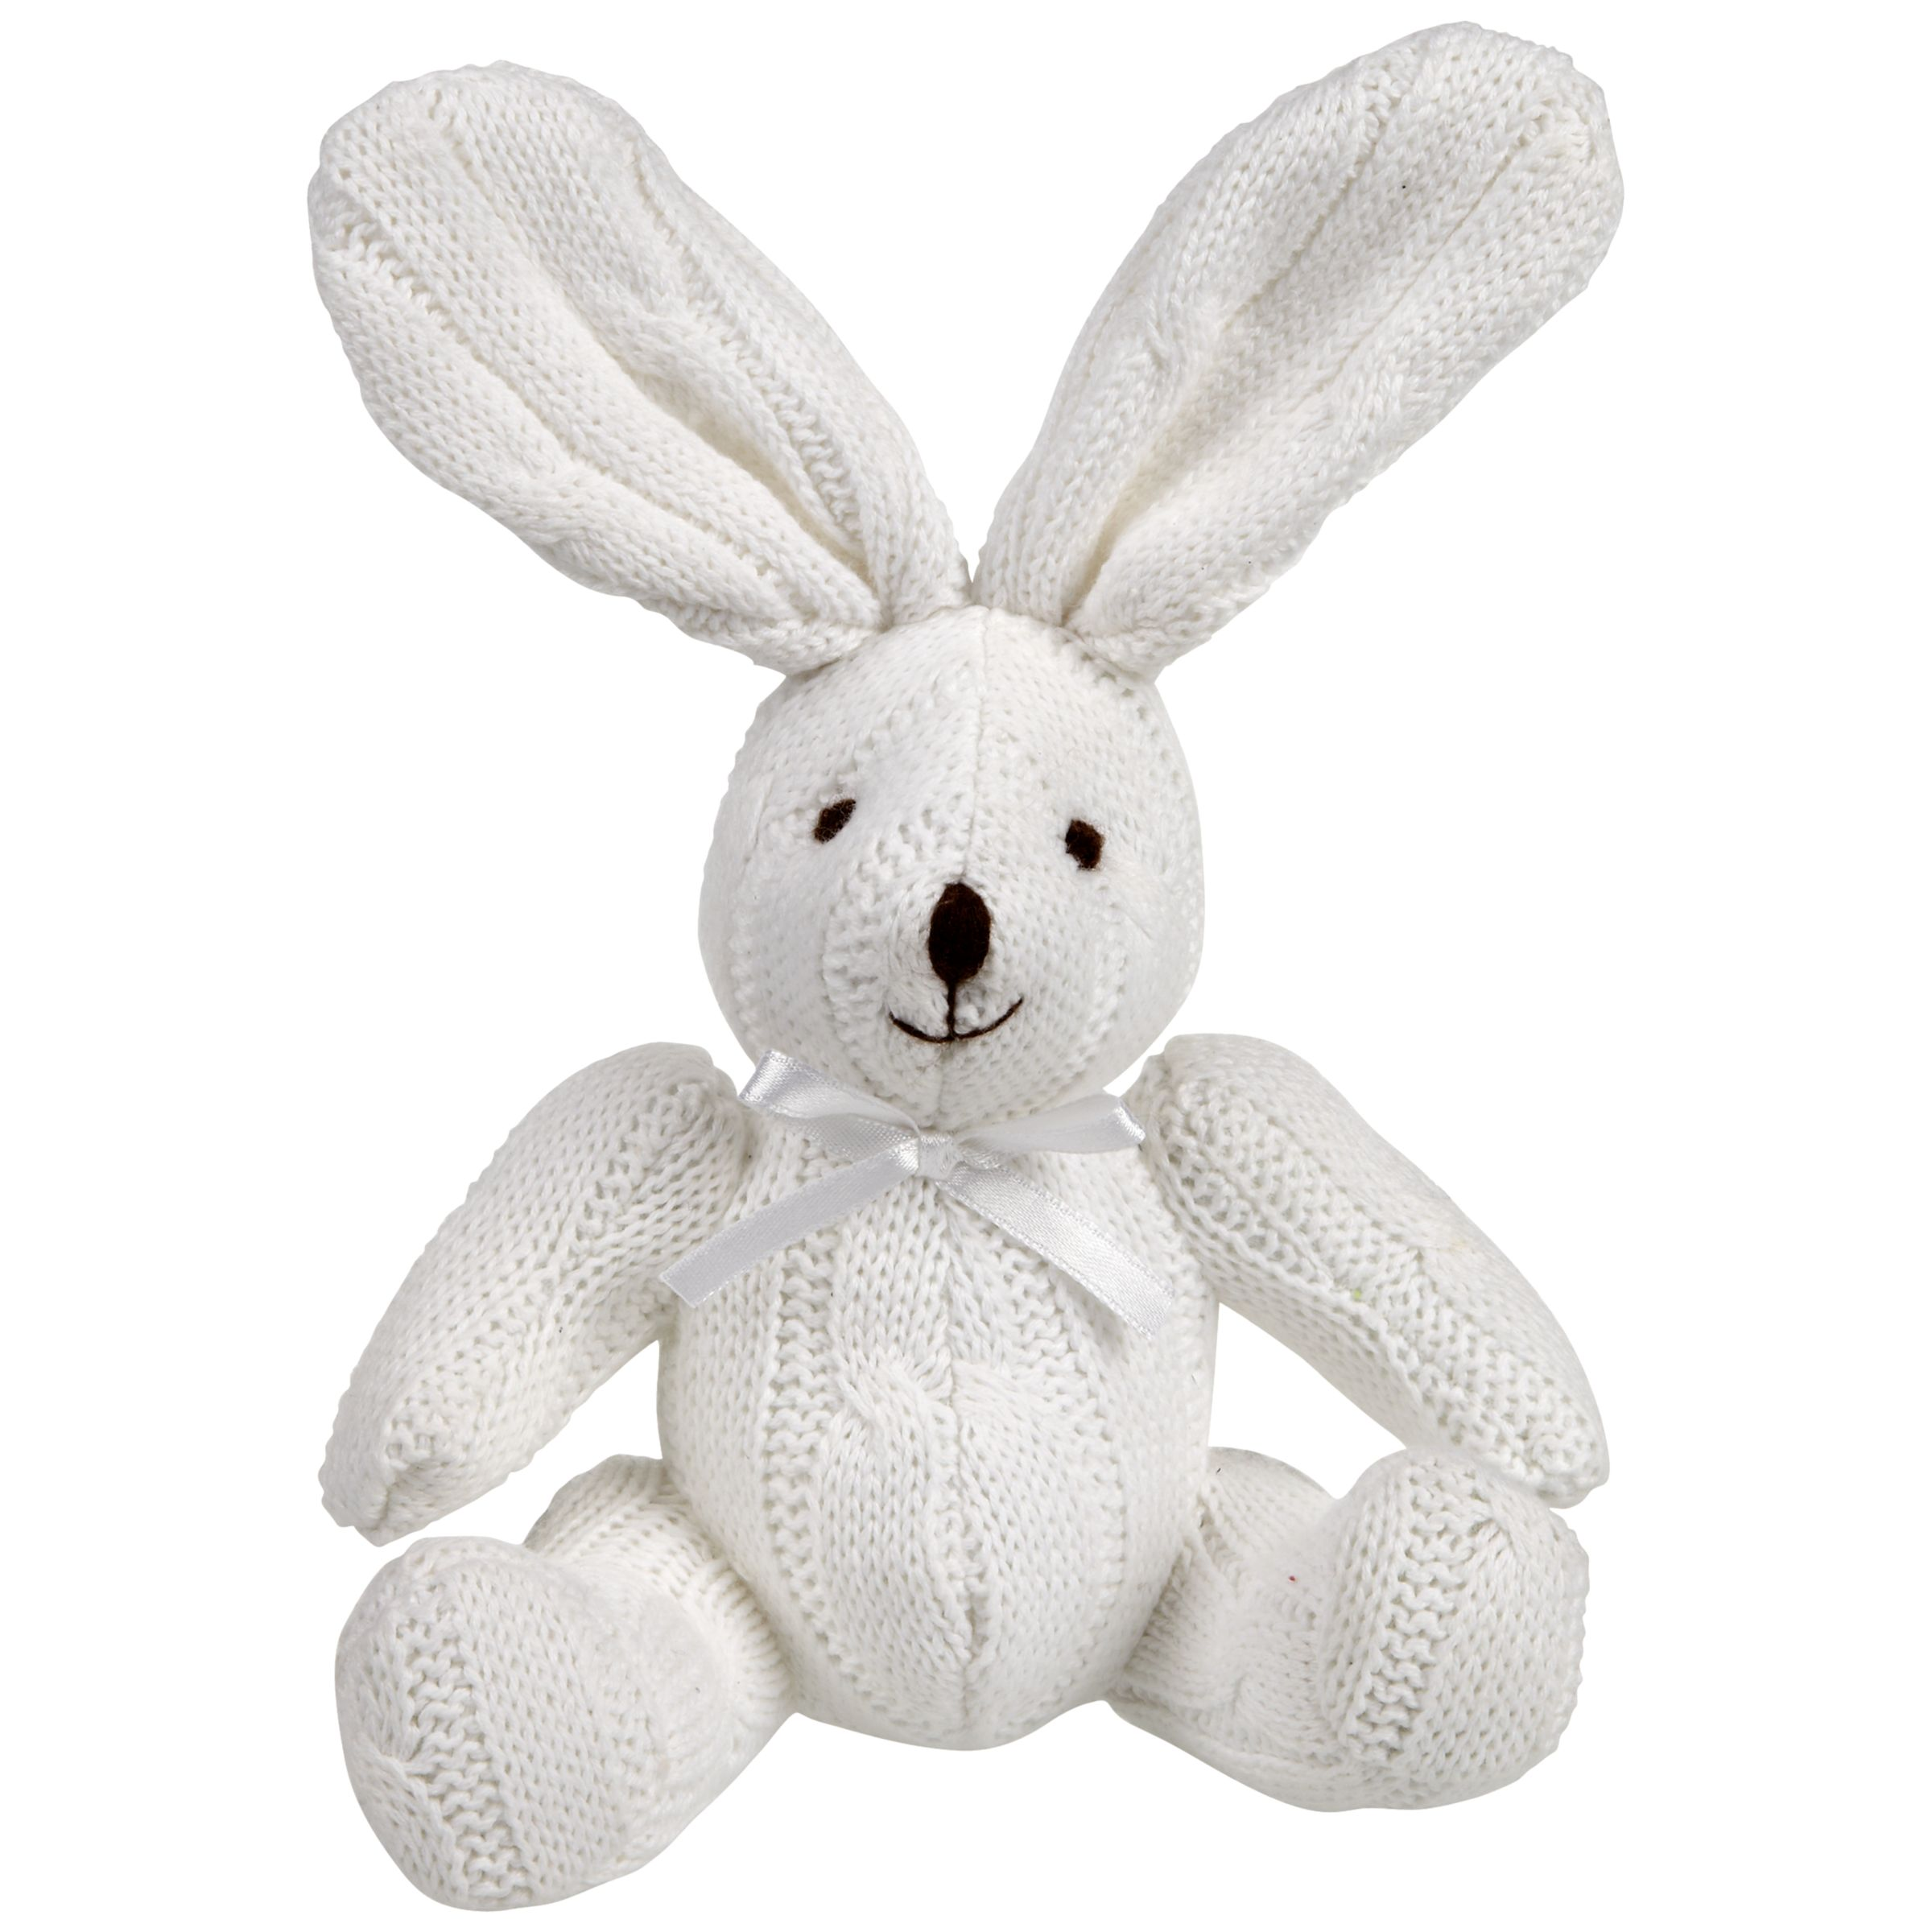 Buy John Lewis Cable Knit Rabbit, White John Lewis